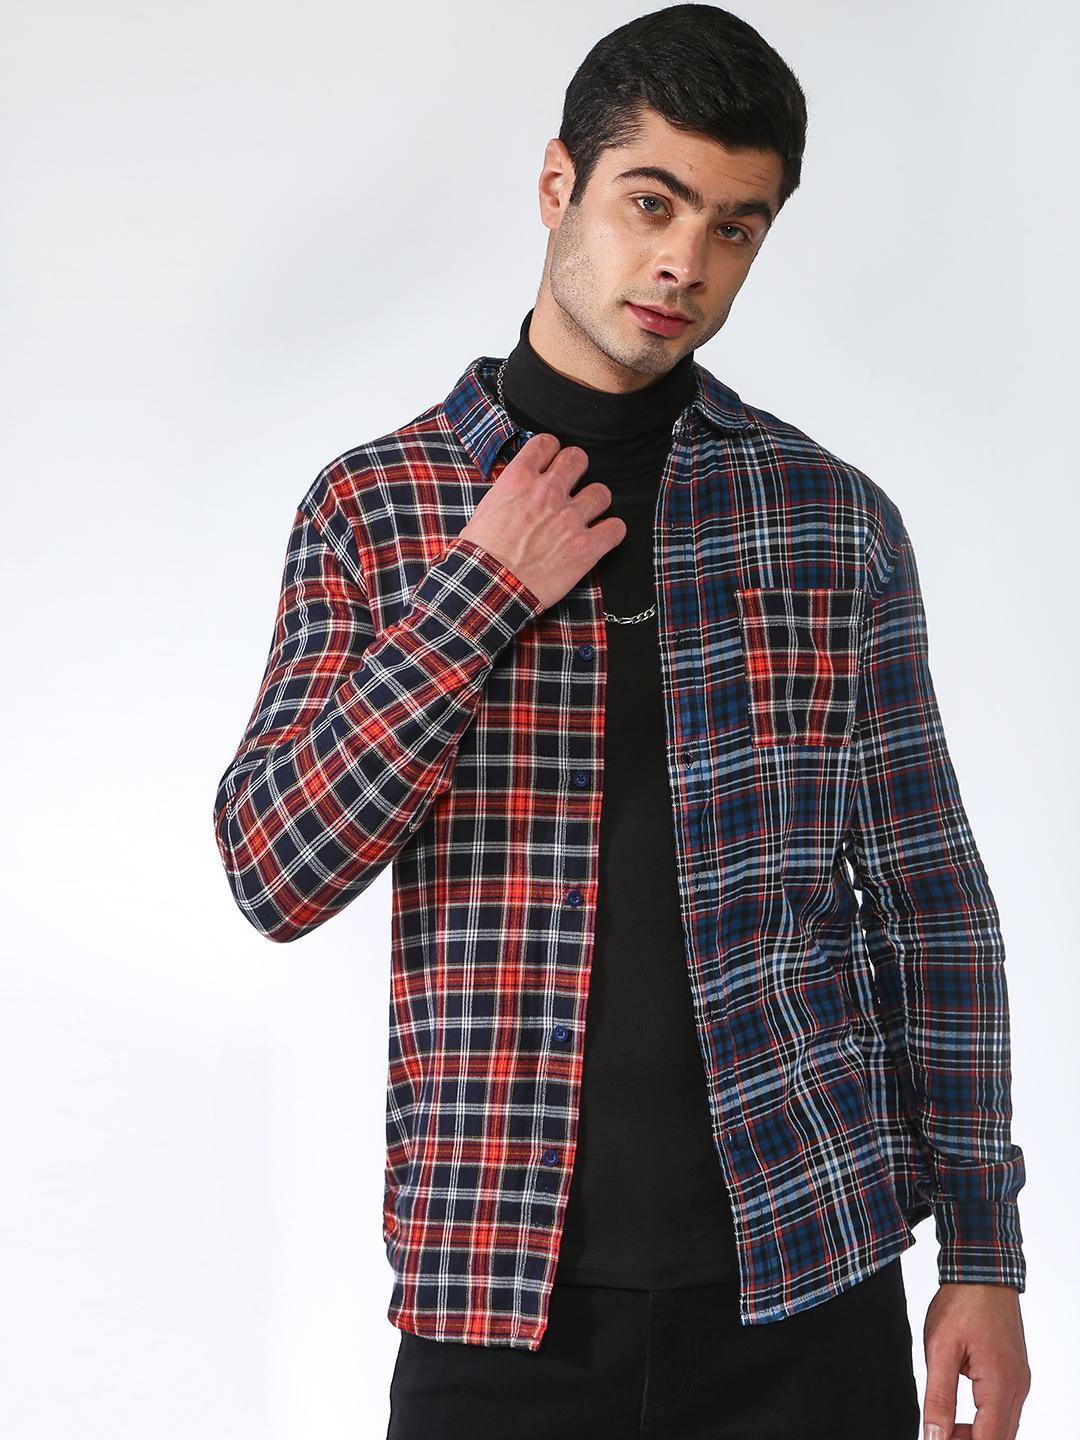 Blue Saint Red/Blue Contrast Half And Half Tartan Check Casual Shirt 1